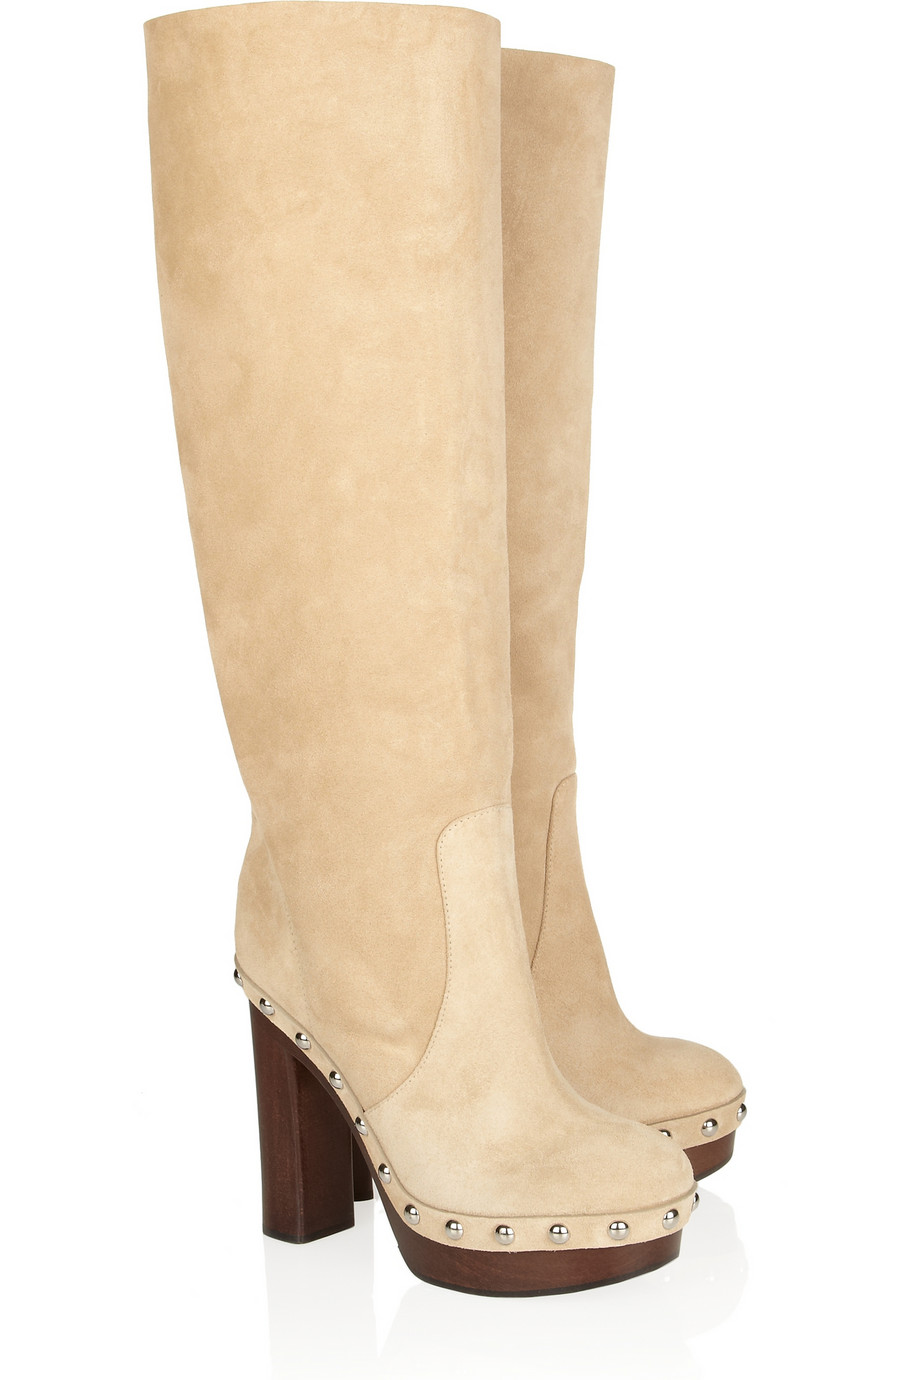 michael kors suede knee boots in lyst